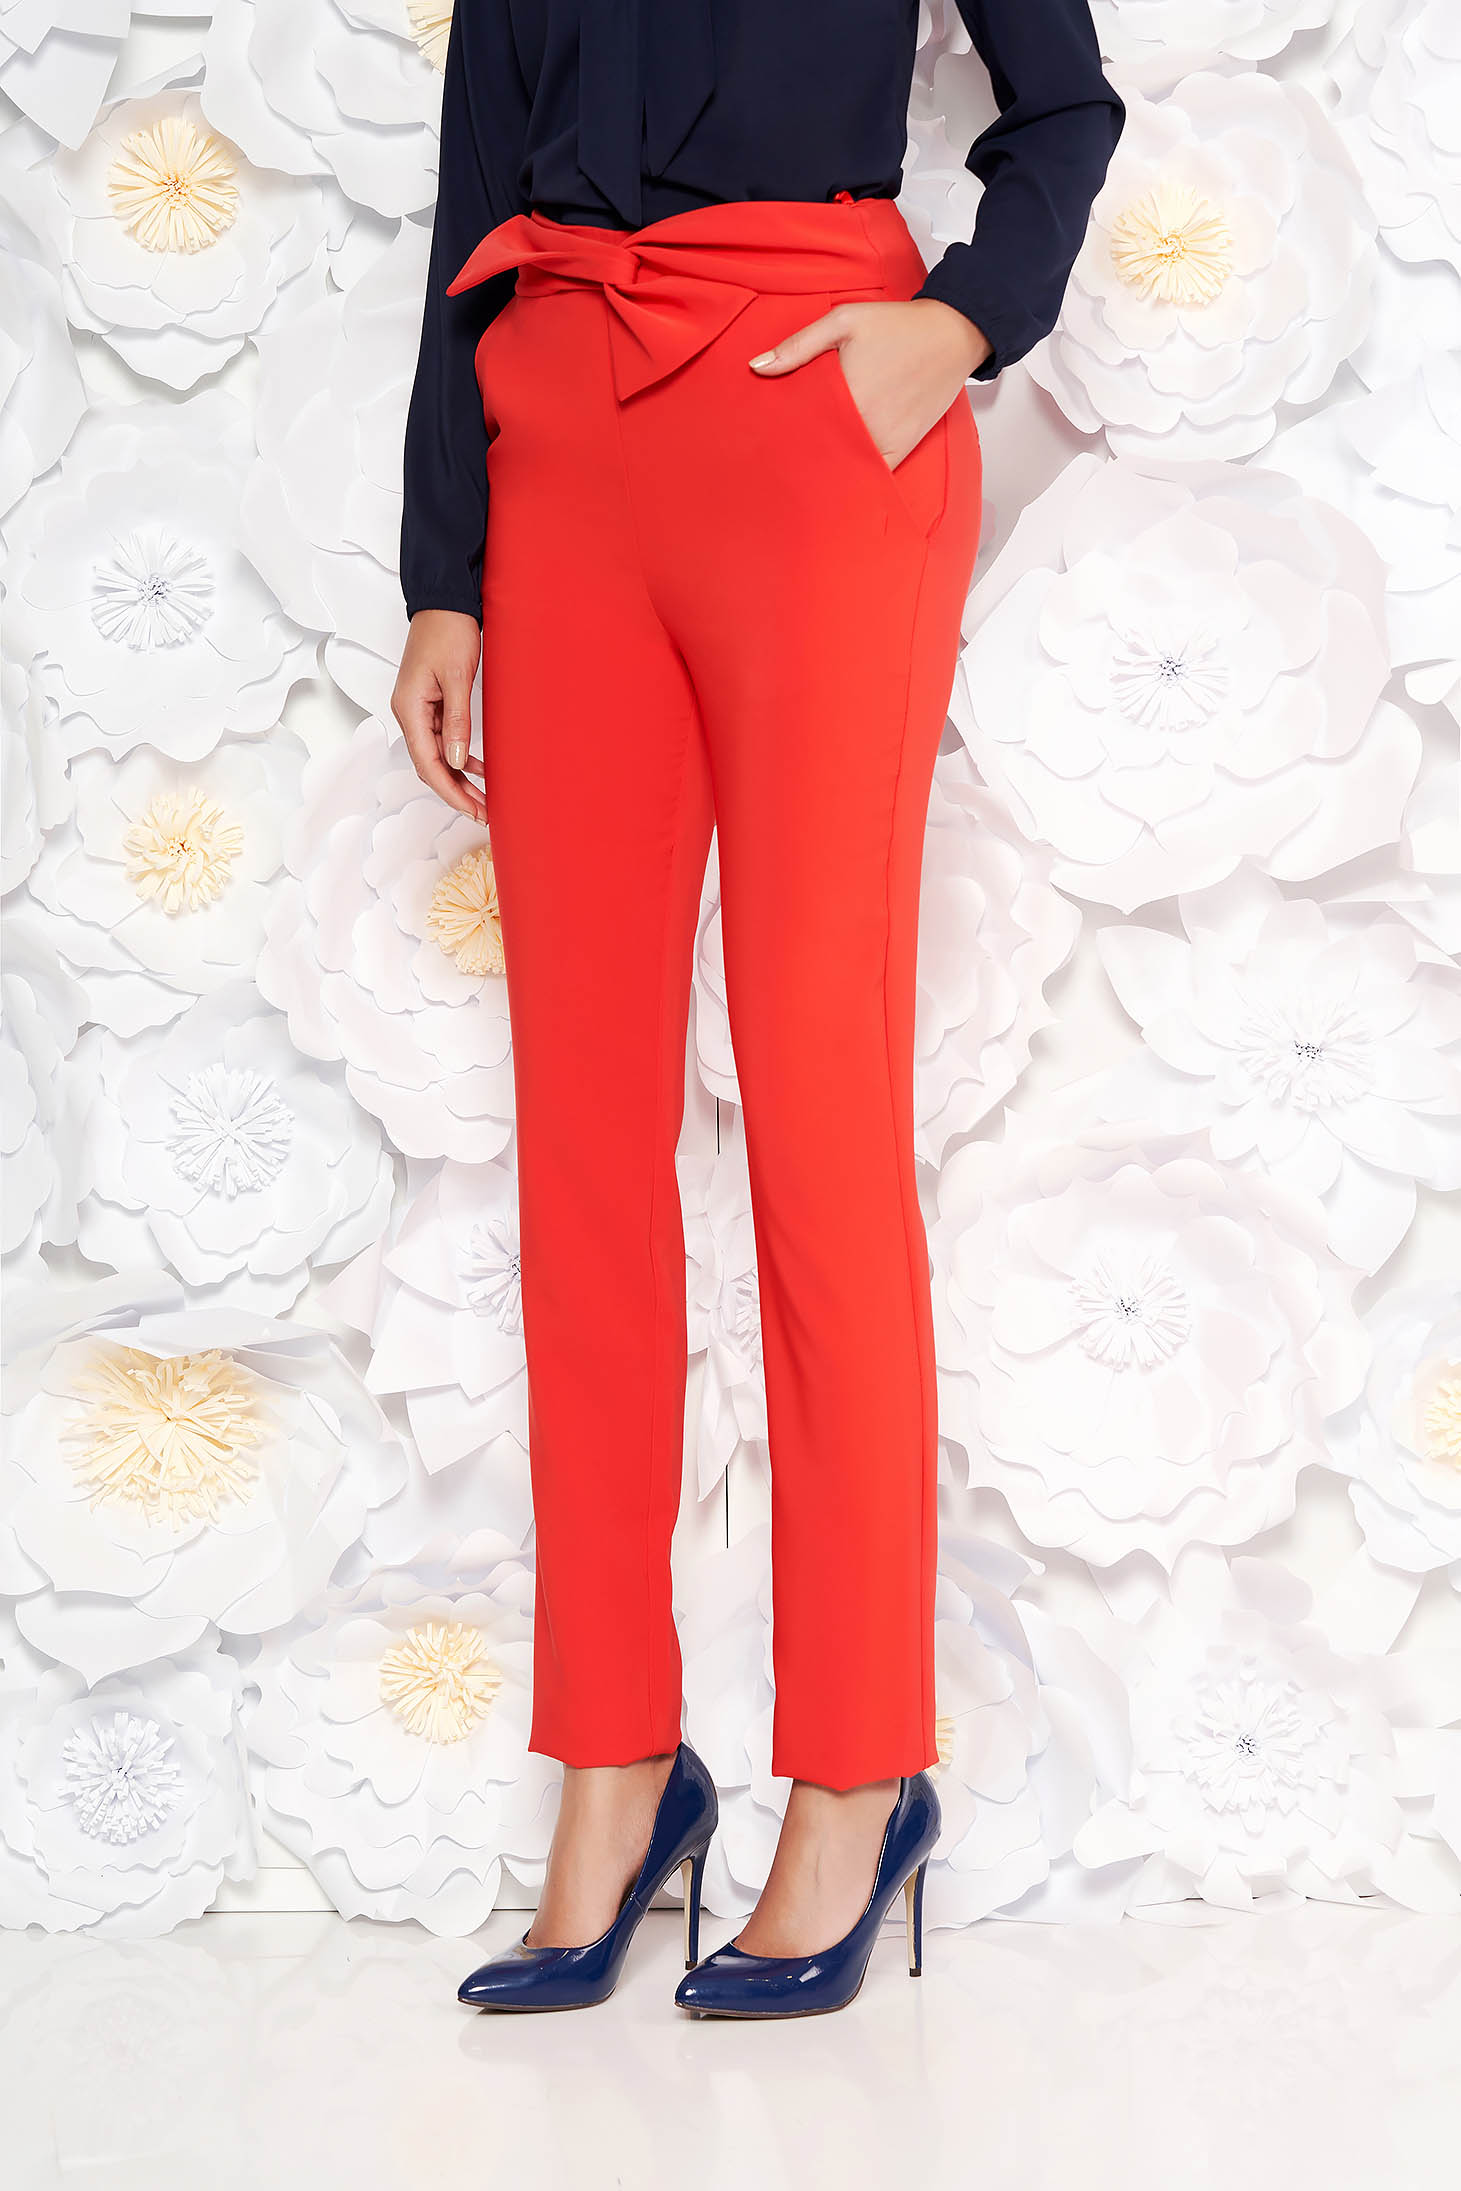 LaDonna coral office high waisted trousers slightly elastic fabric with pockets